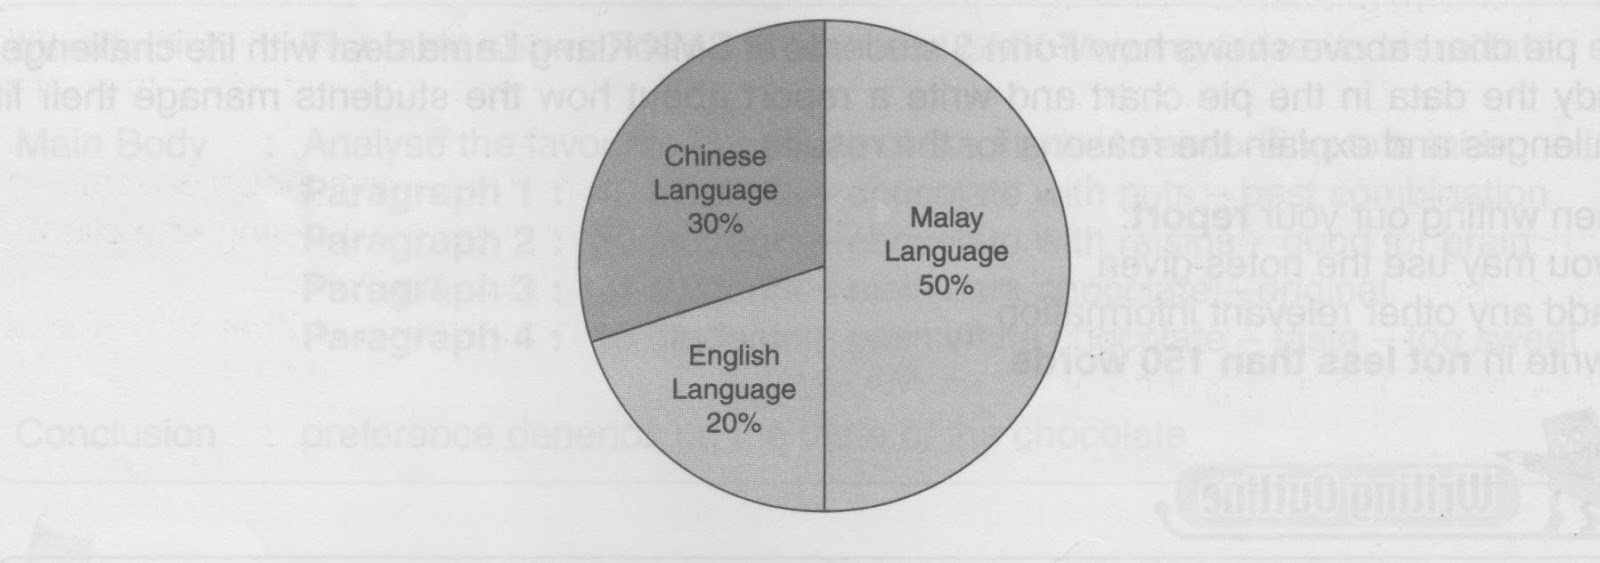 Learning english daily pt3 guided writing composition 12 medium of communication among employees of abc sdn bhd nvjuhfo Choice Image